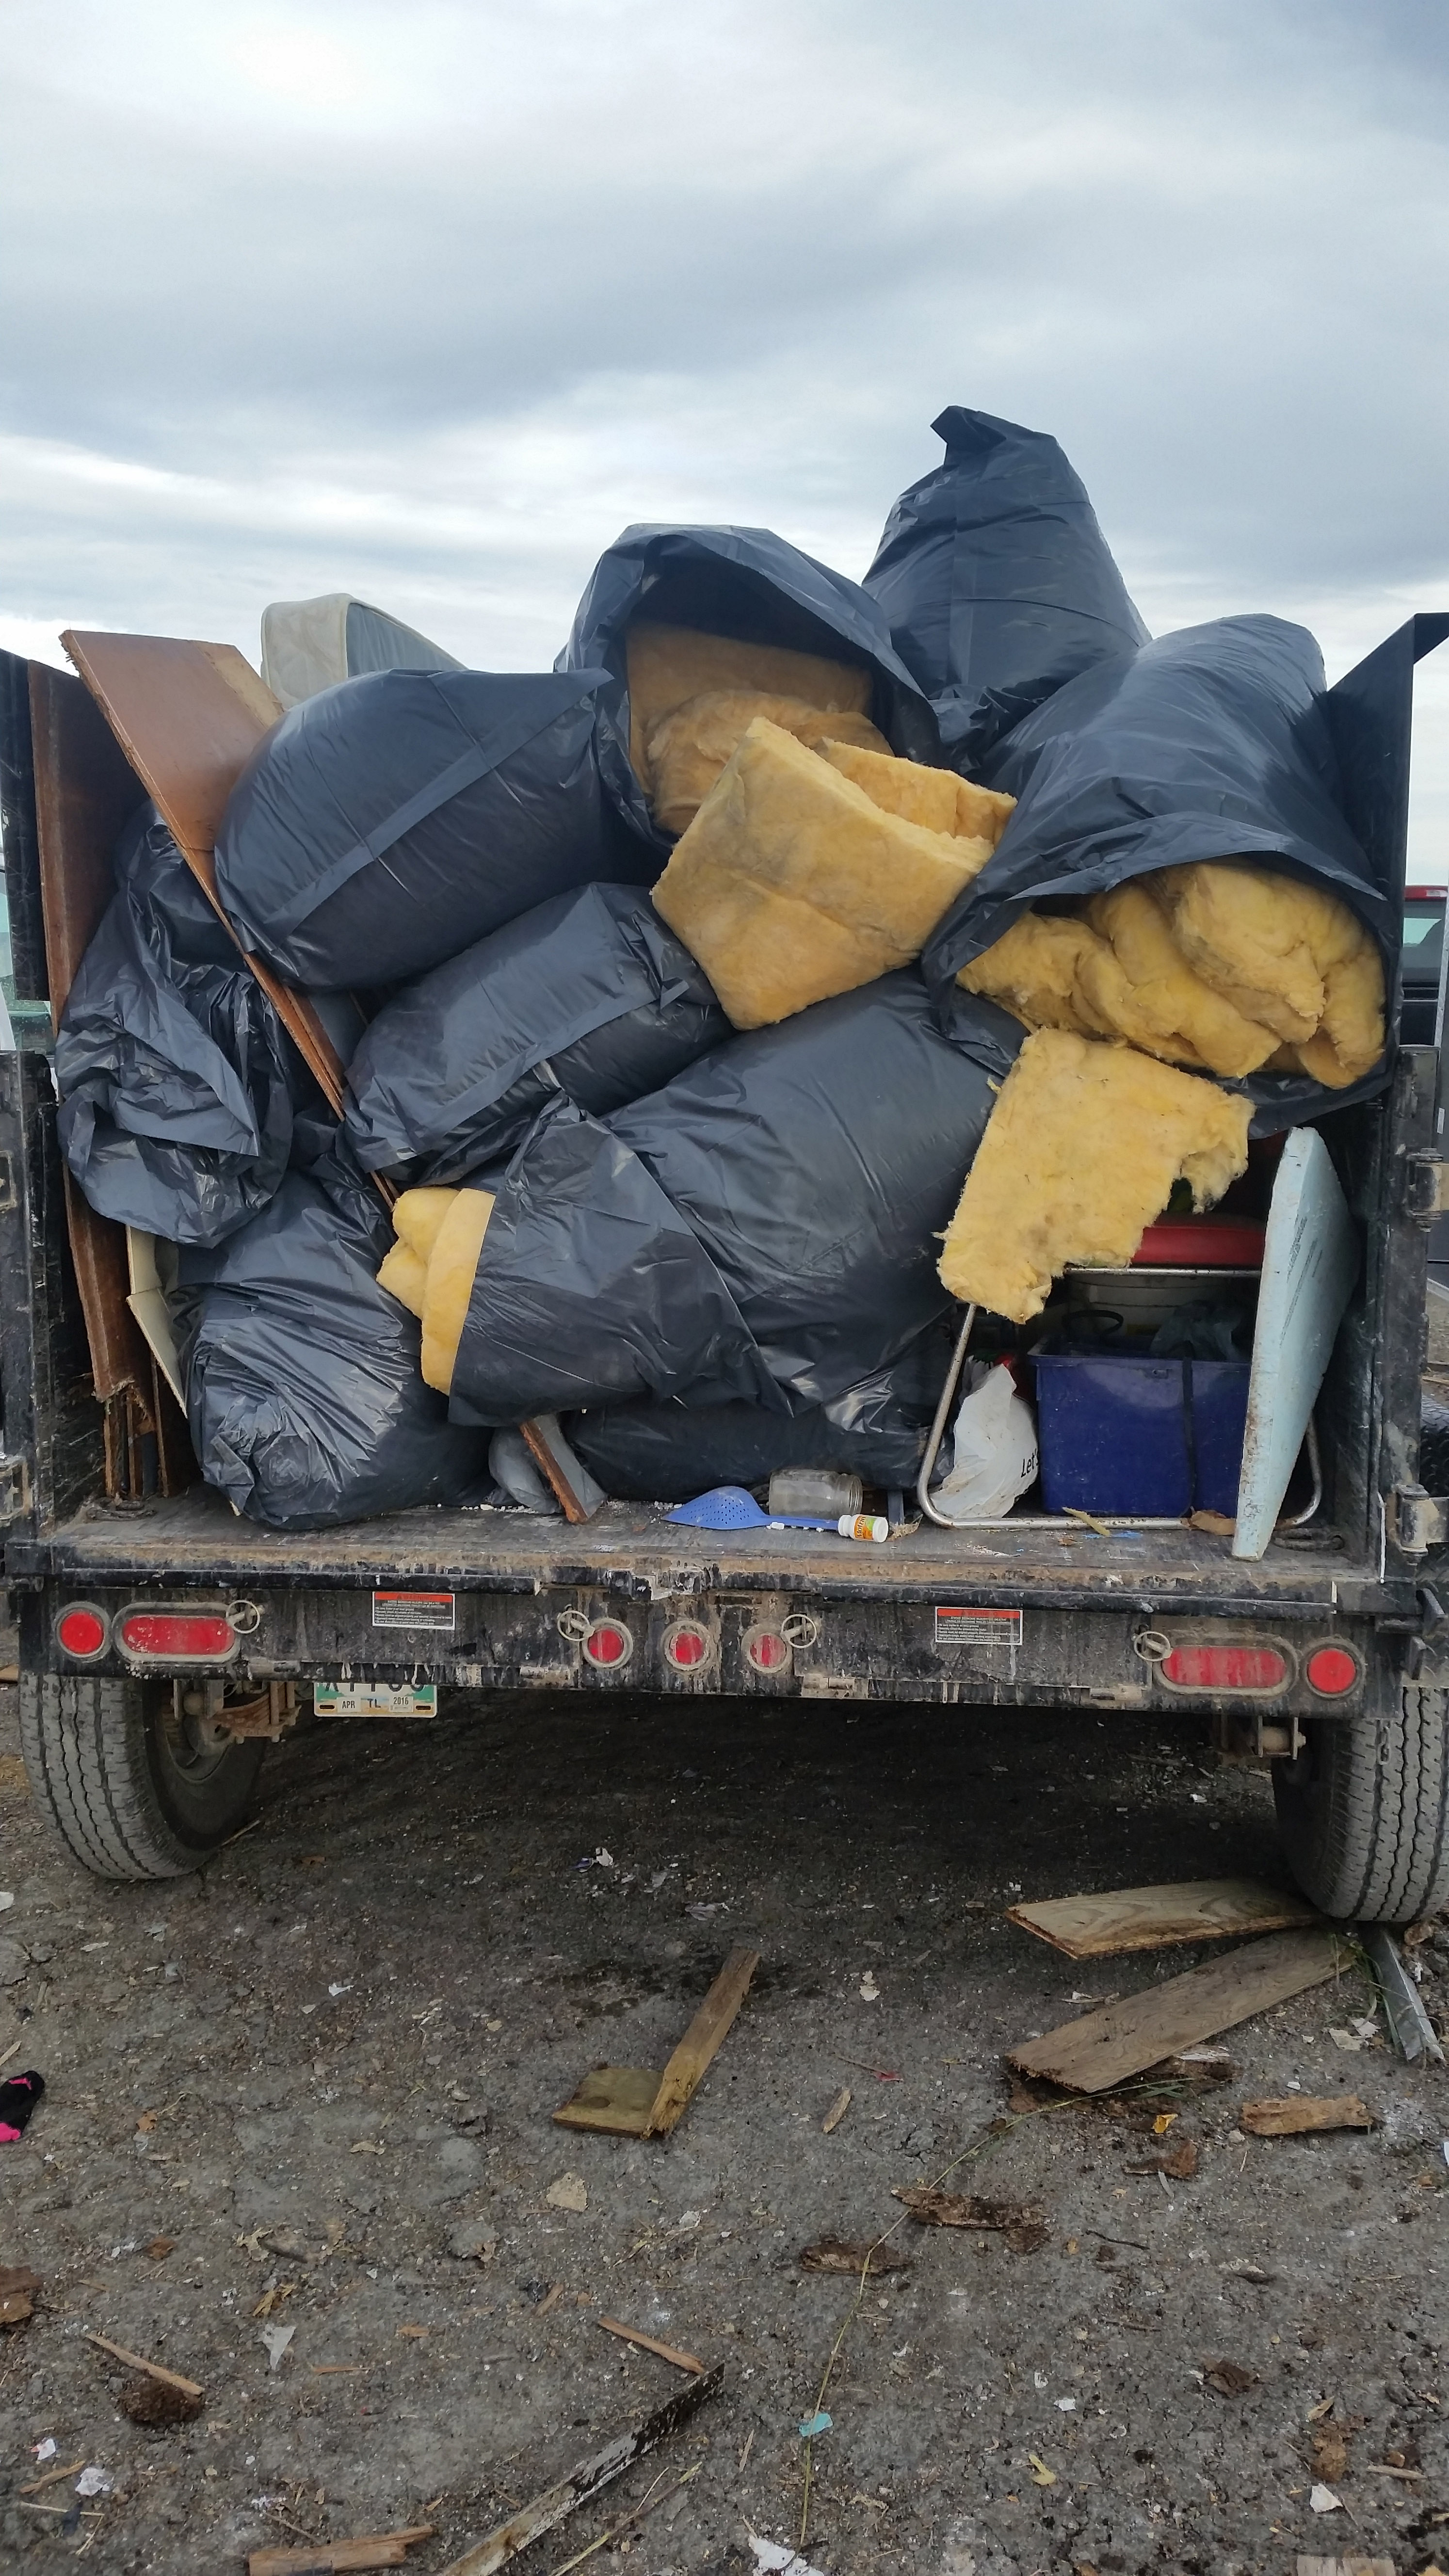 Full Trailer Load, $240 Junk Removal Load - Chuck It! Junk Removal - Hauling Services Winnipeg